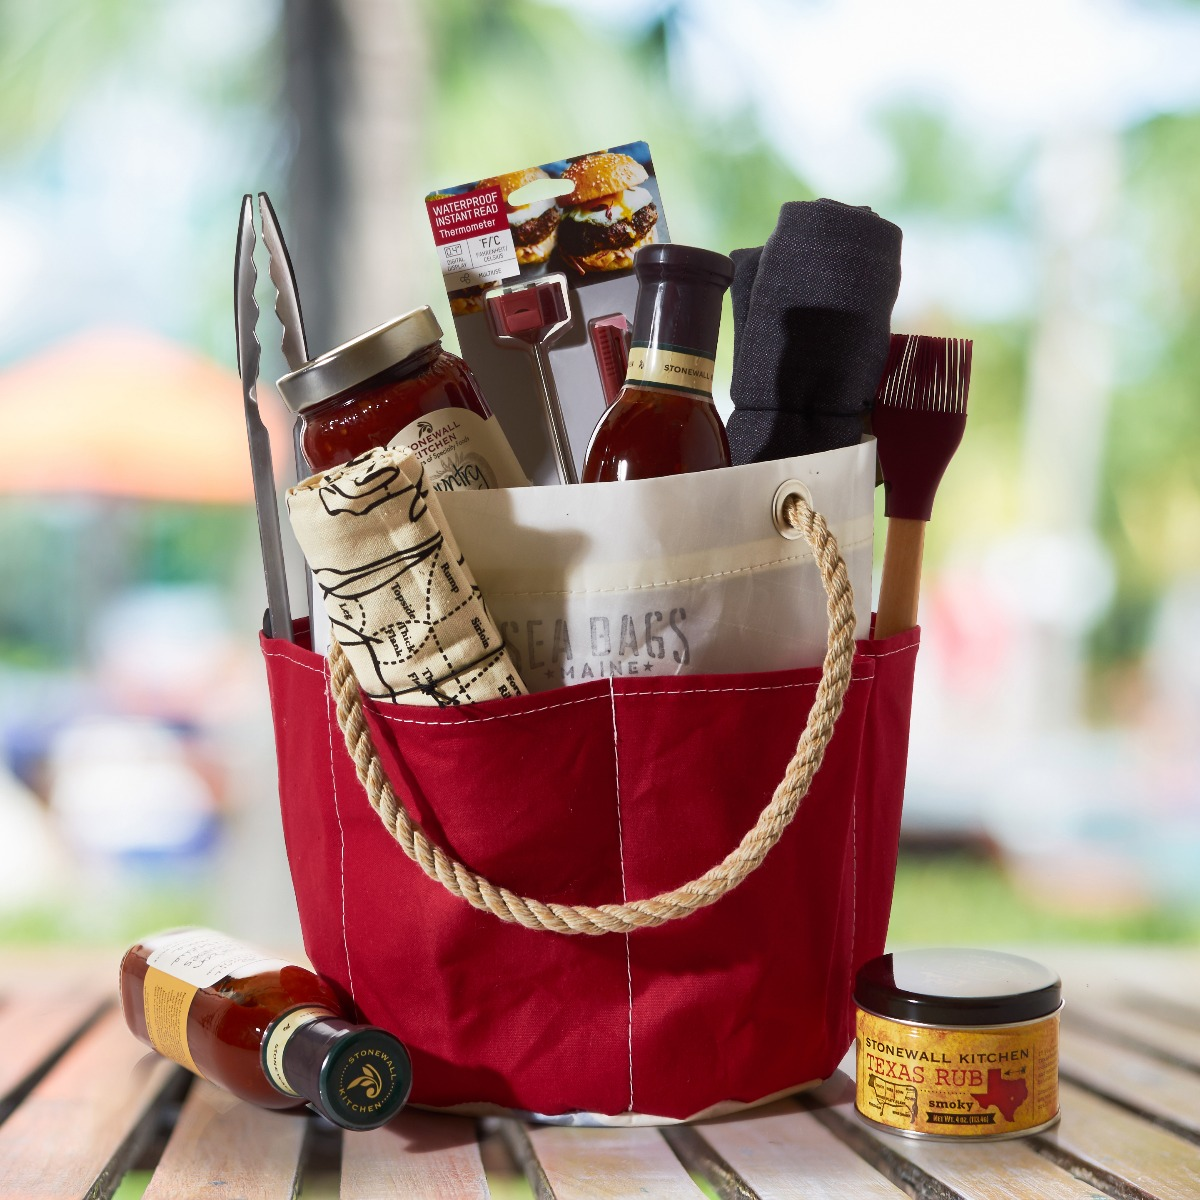 Recycled Sail Cloth Bucket Bag with Grilling Tools Inside